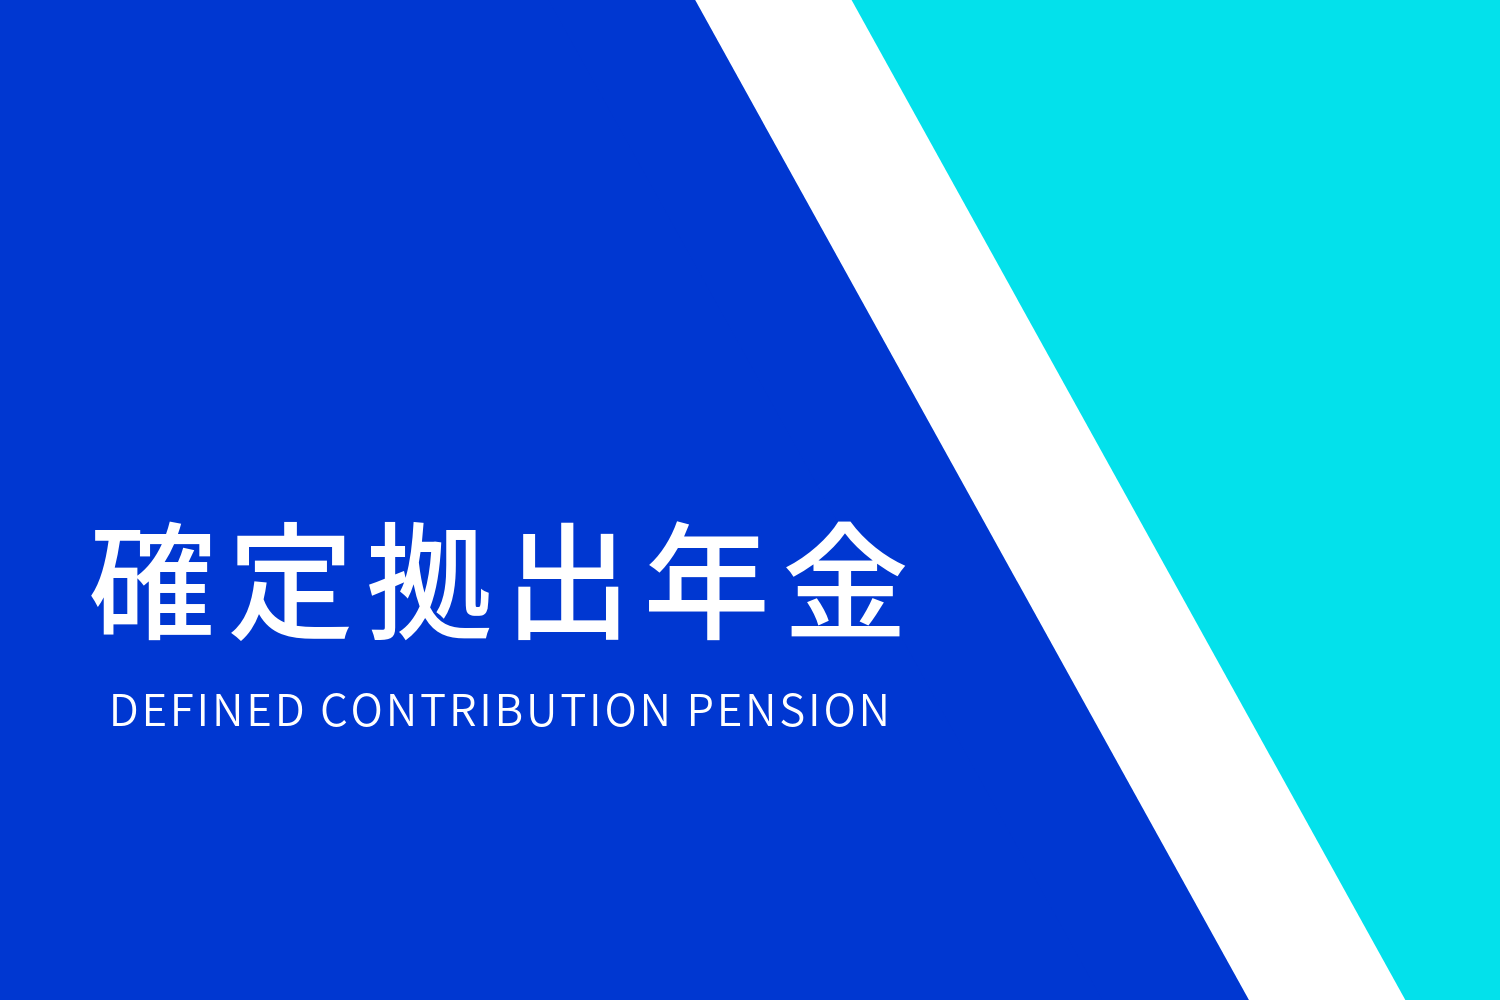 DEFINED CONTRIBUTION PENSION